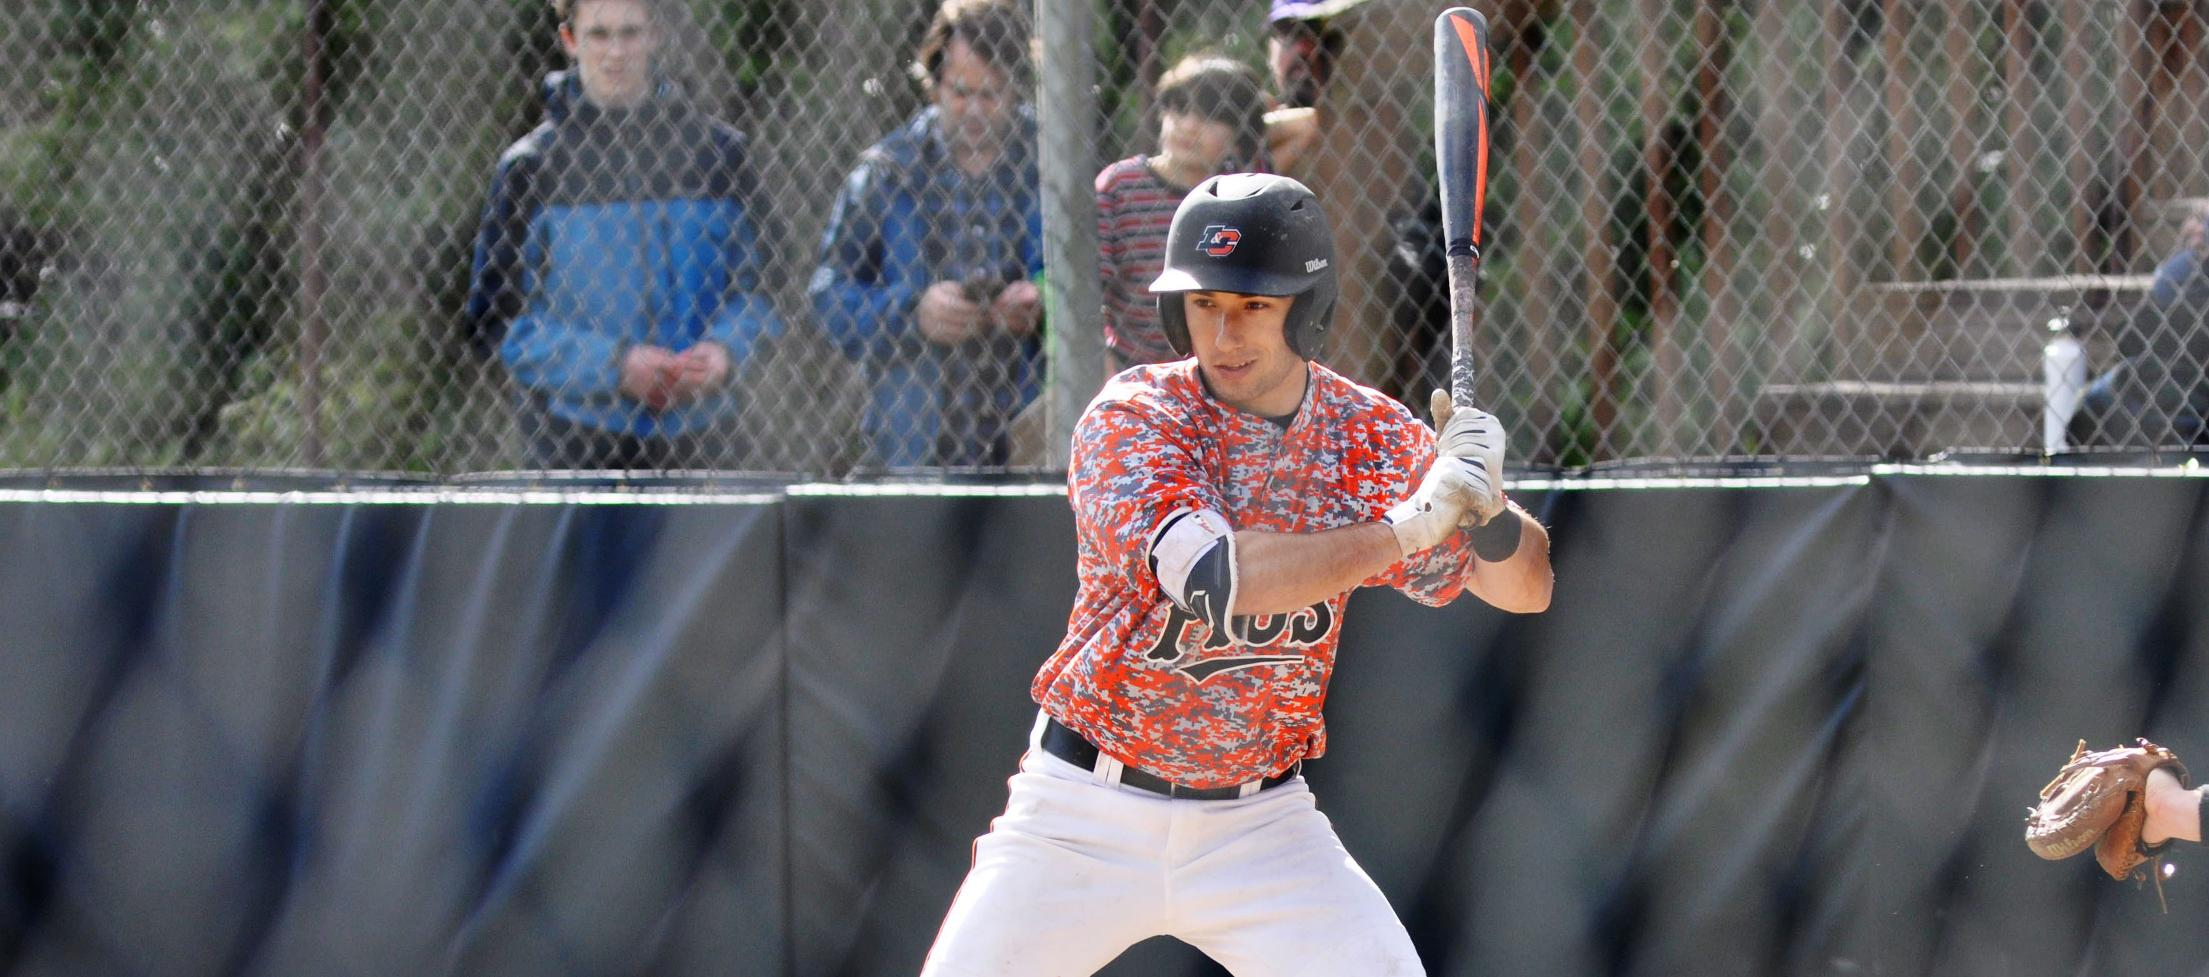 Lewis & Clark can't complete late rally for win